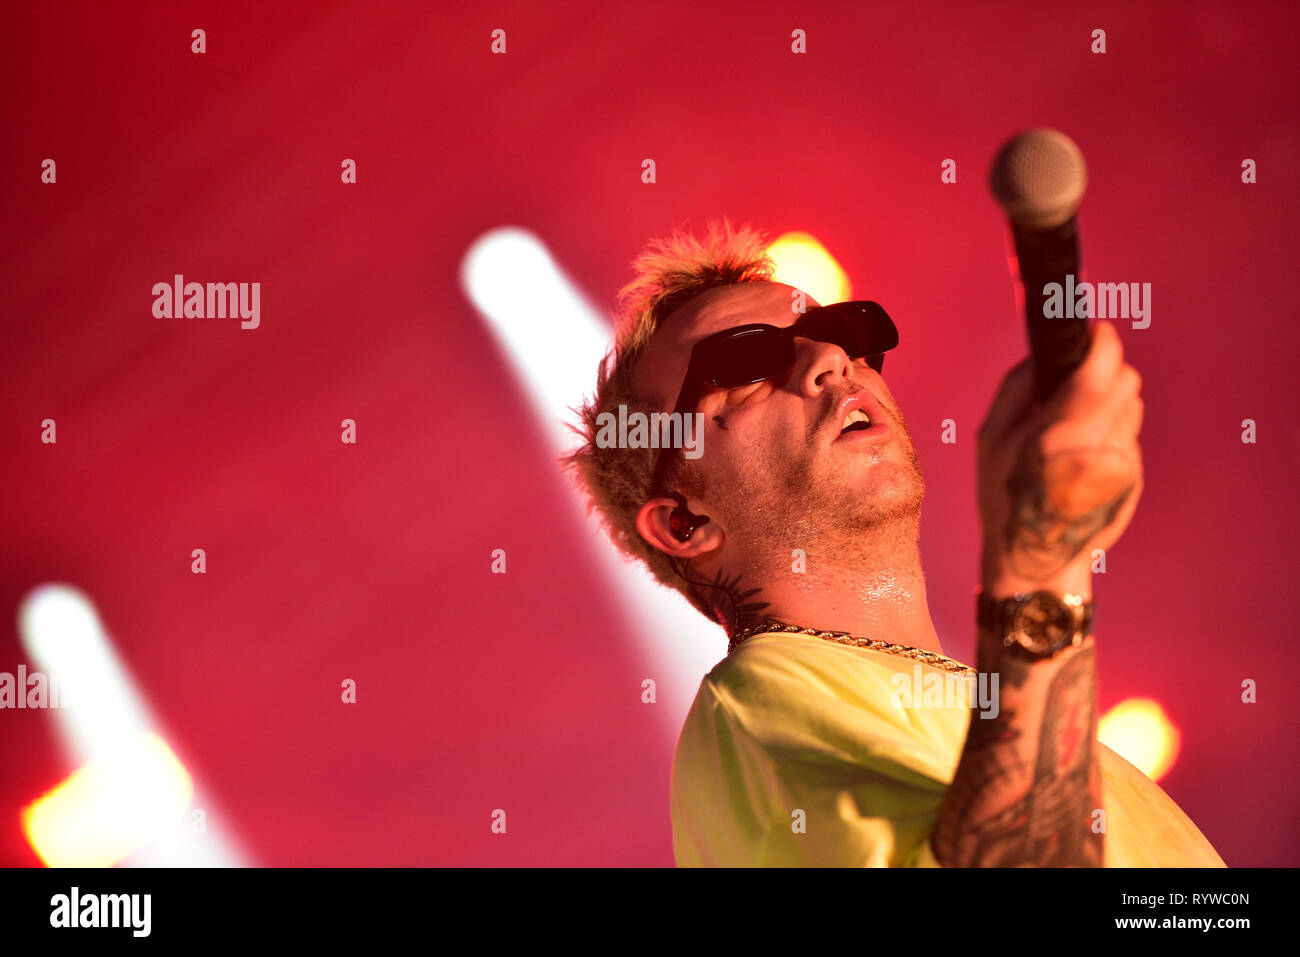 """Napoli, Italy. 14th Mar, 2019. The Italian rapper Maurizio Pisciottu aka Salmo performing live on stage for his """"Playlist"""" tour concert in Napoli at the Palapartenope in front a sold out venue. Credit: Paola Visone/Pacific Press/Alamy Live News Stock Photo"""